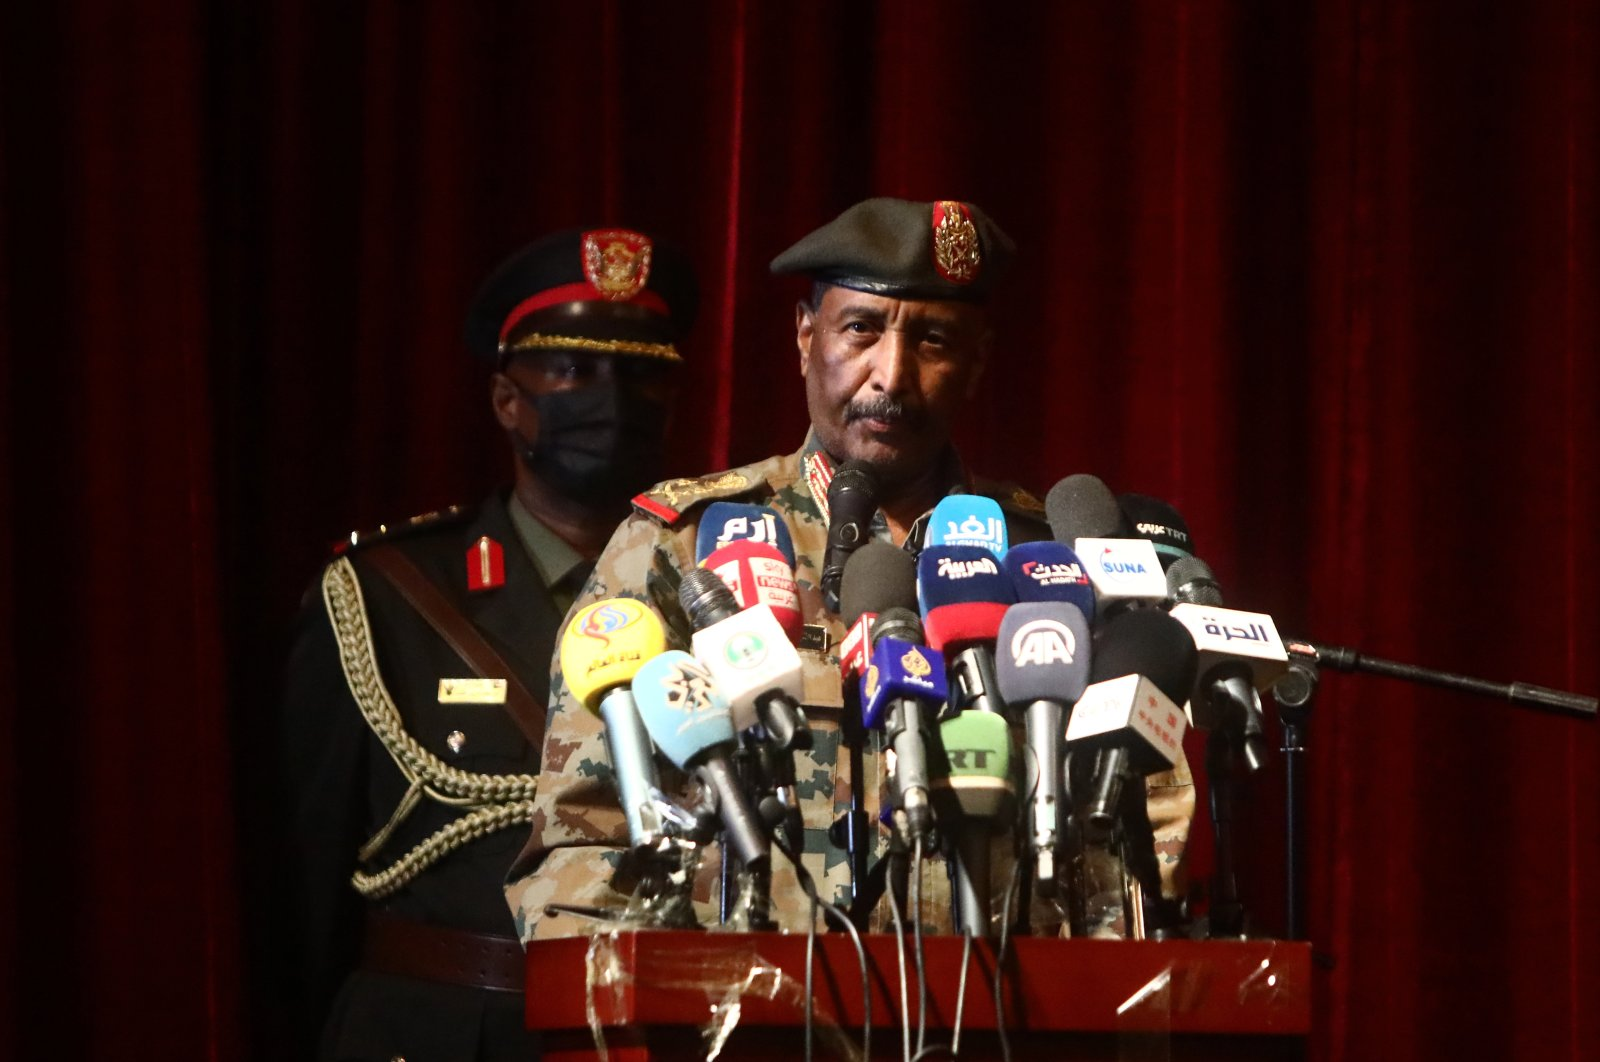 Abdel Fattah al-Burhan, the chairperson of the country's Sovereign Council, speaks at a conference in Khartoum, Sudan, Aug.15, 2021. (AA Photo)